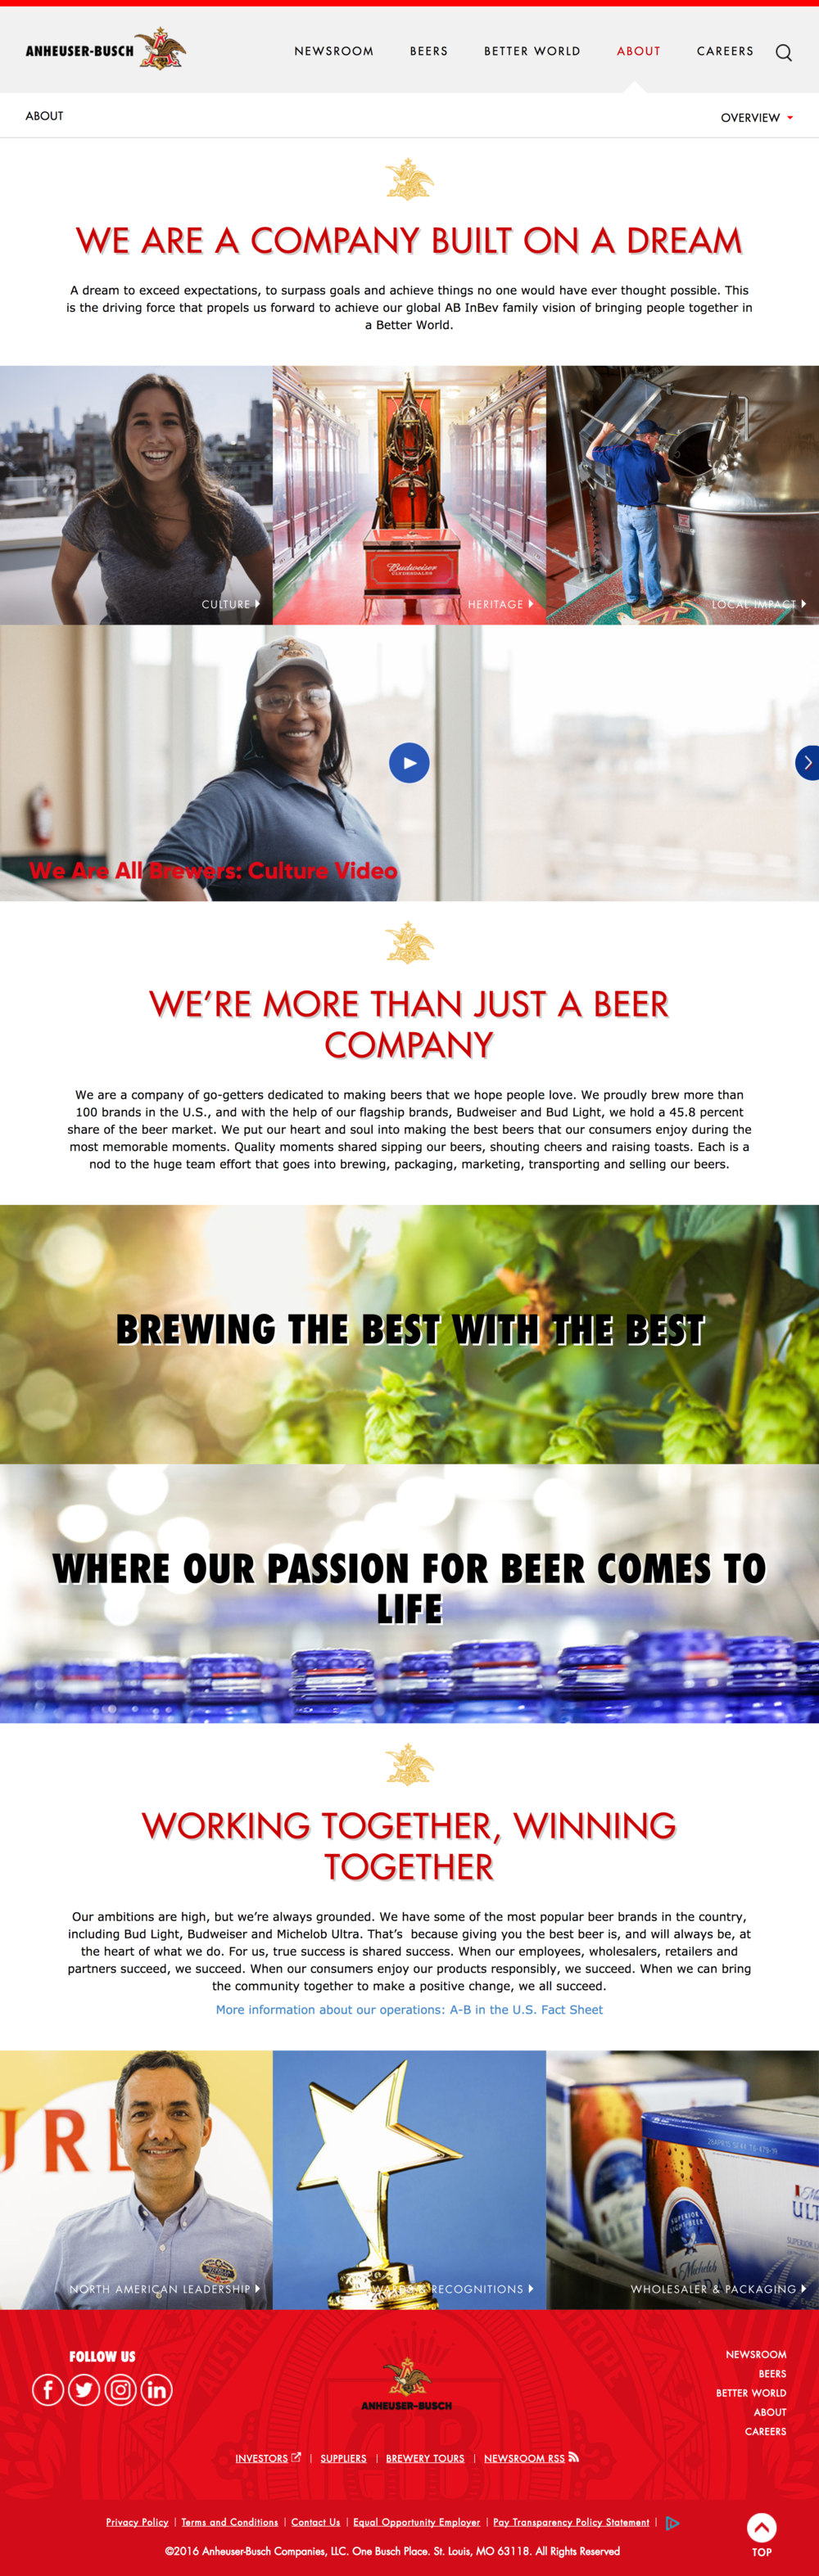 screencapture-anheuser-busch-about-html-1504736528056.png